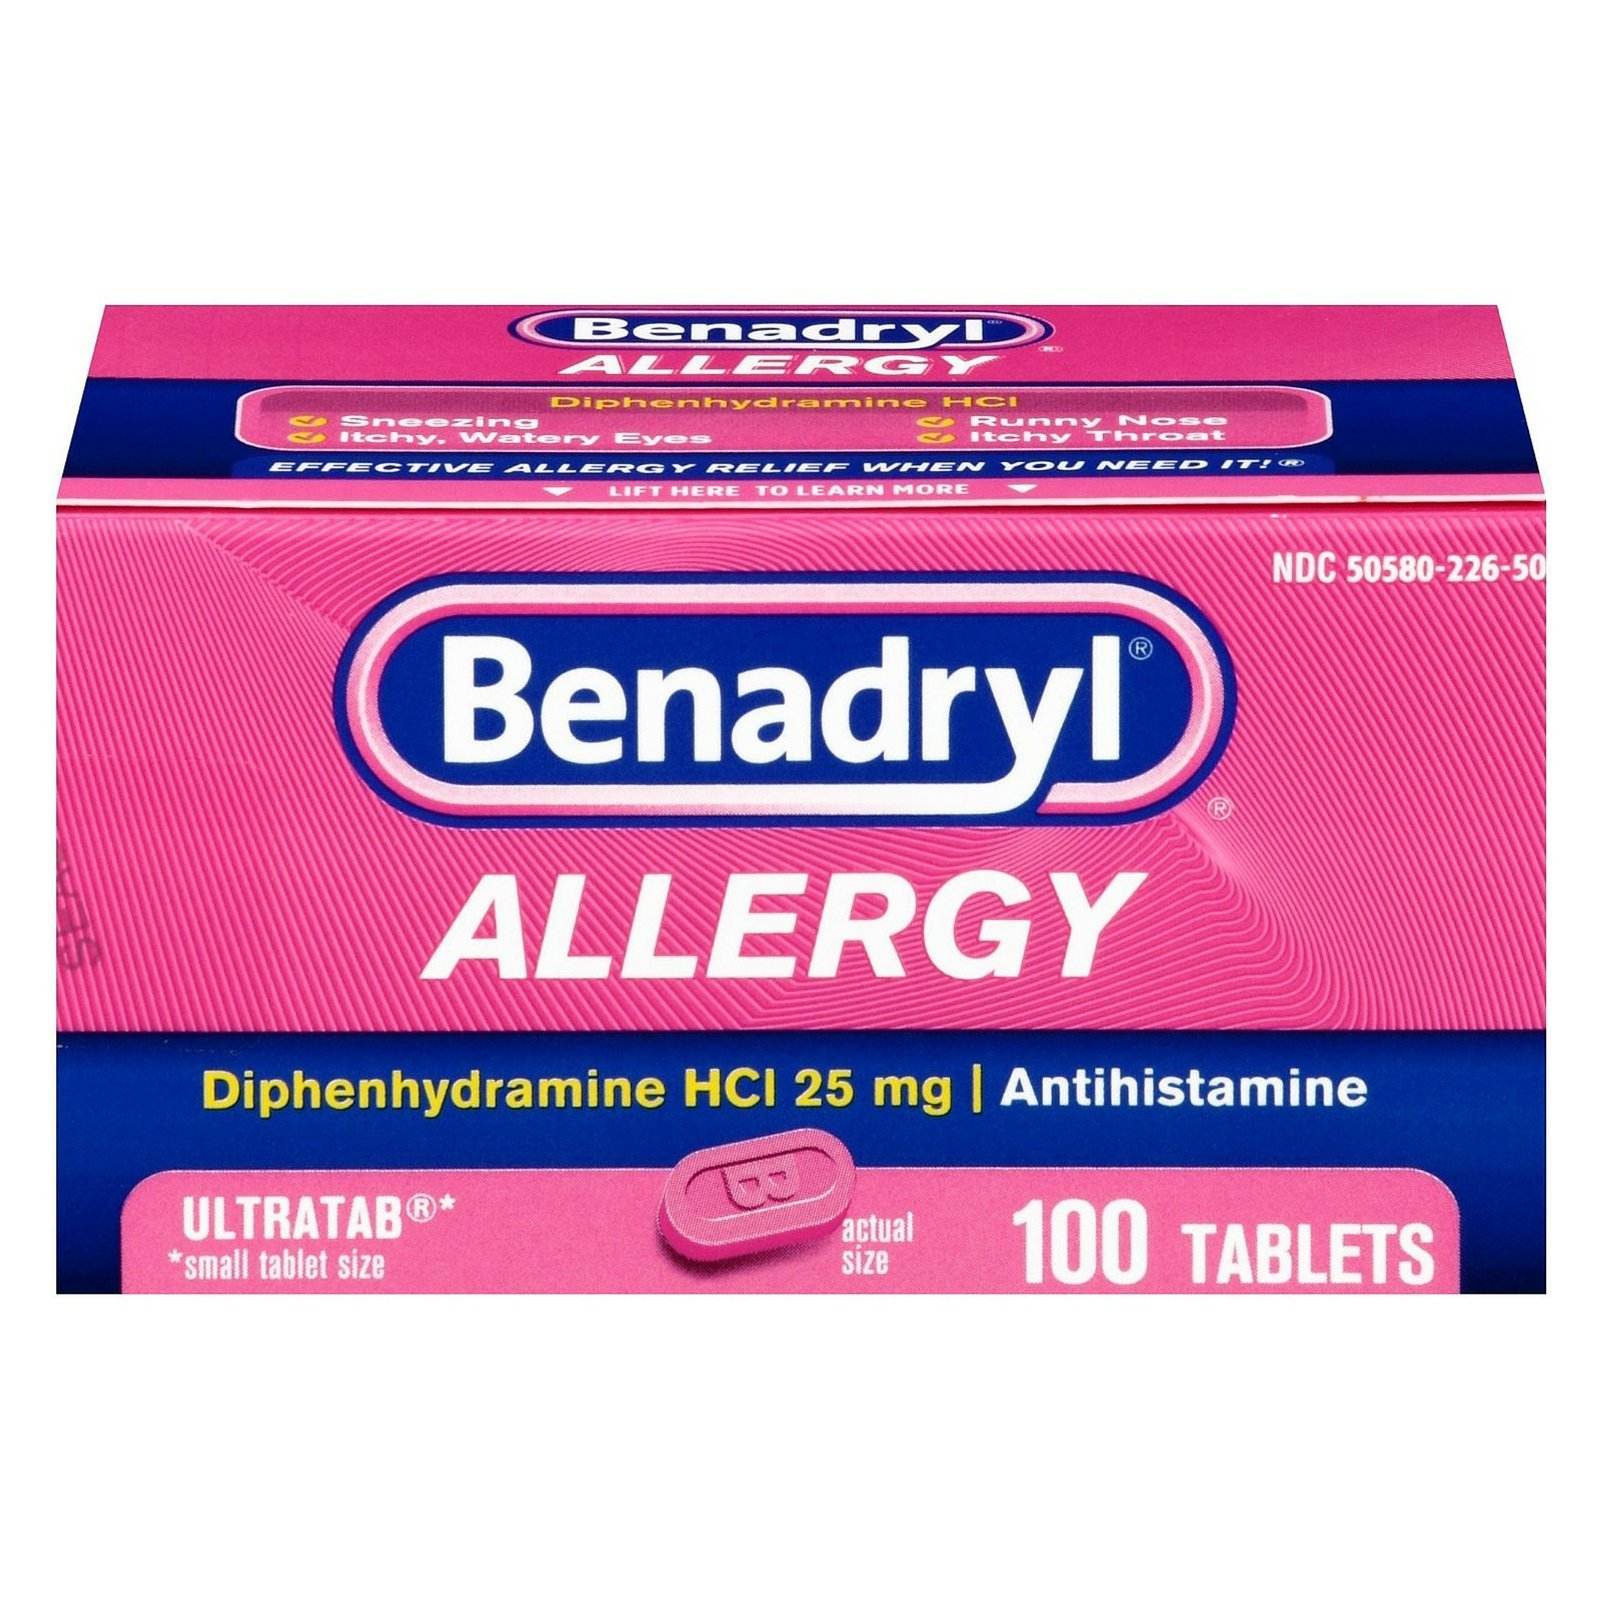 Benadryl Allergy Ultratab Tablets, 100 tablets (Pack of 2) by Benadryl